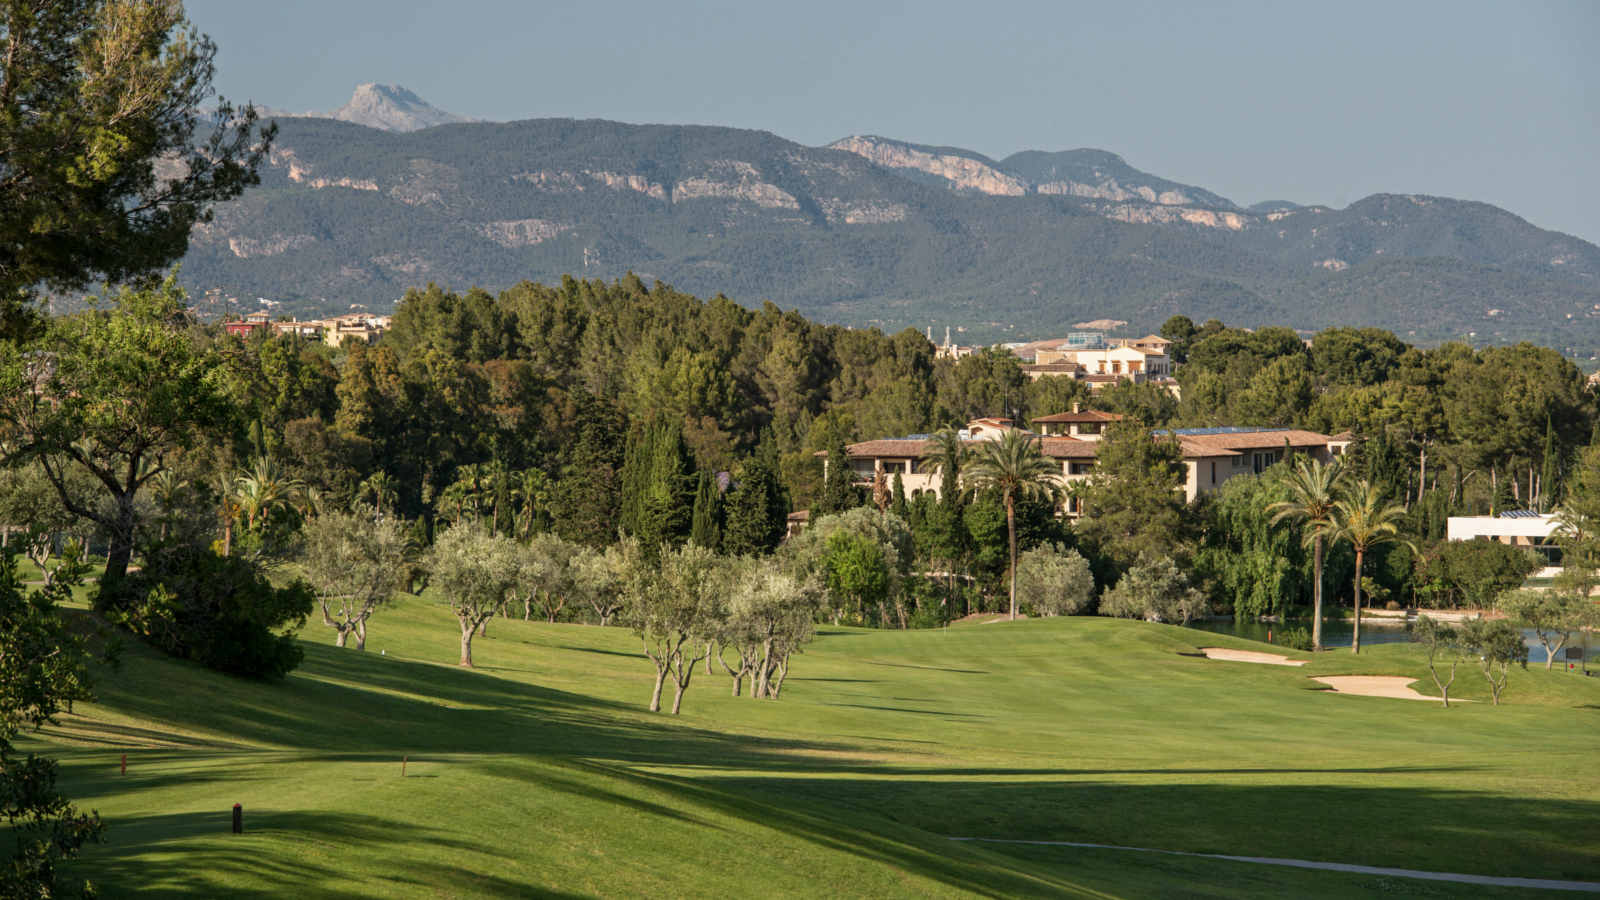 Son Vida golf course hosted two european tours at The St. Regis Mardavall Mallorca